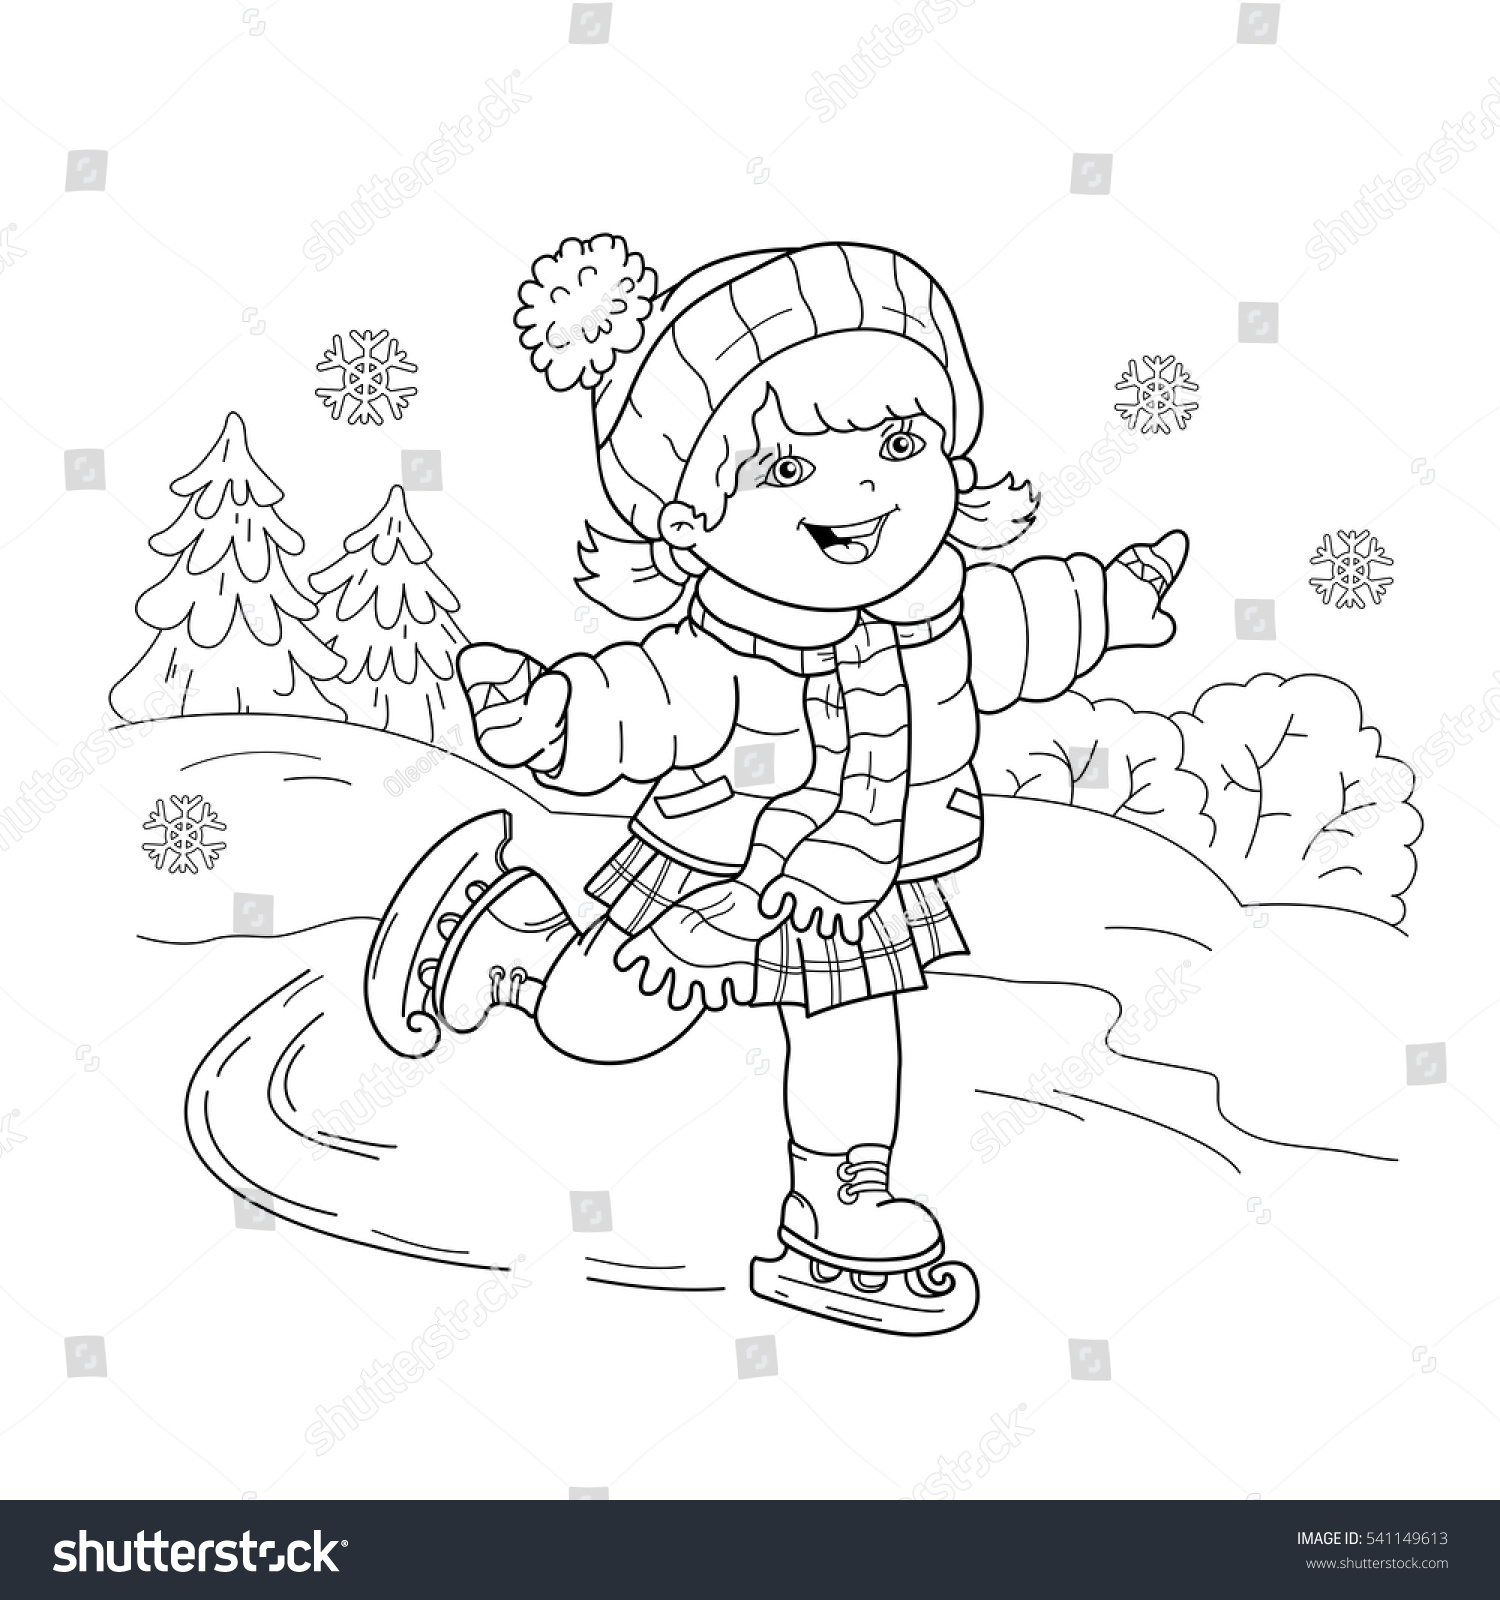 coloring page outline of cartoon girl skating winter sports coloring book for kids - Sports Coloring Book